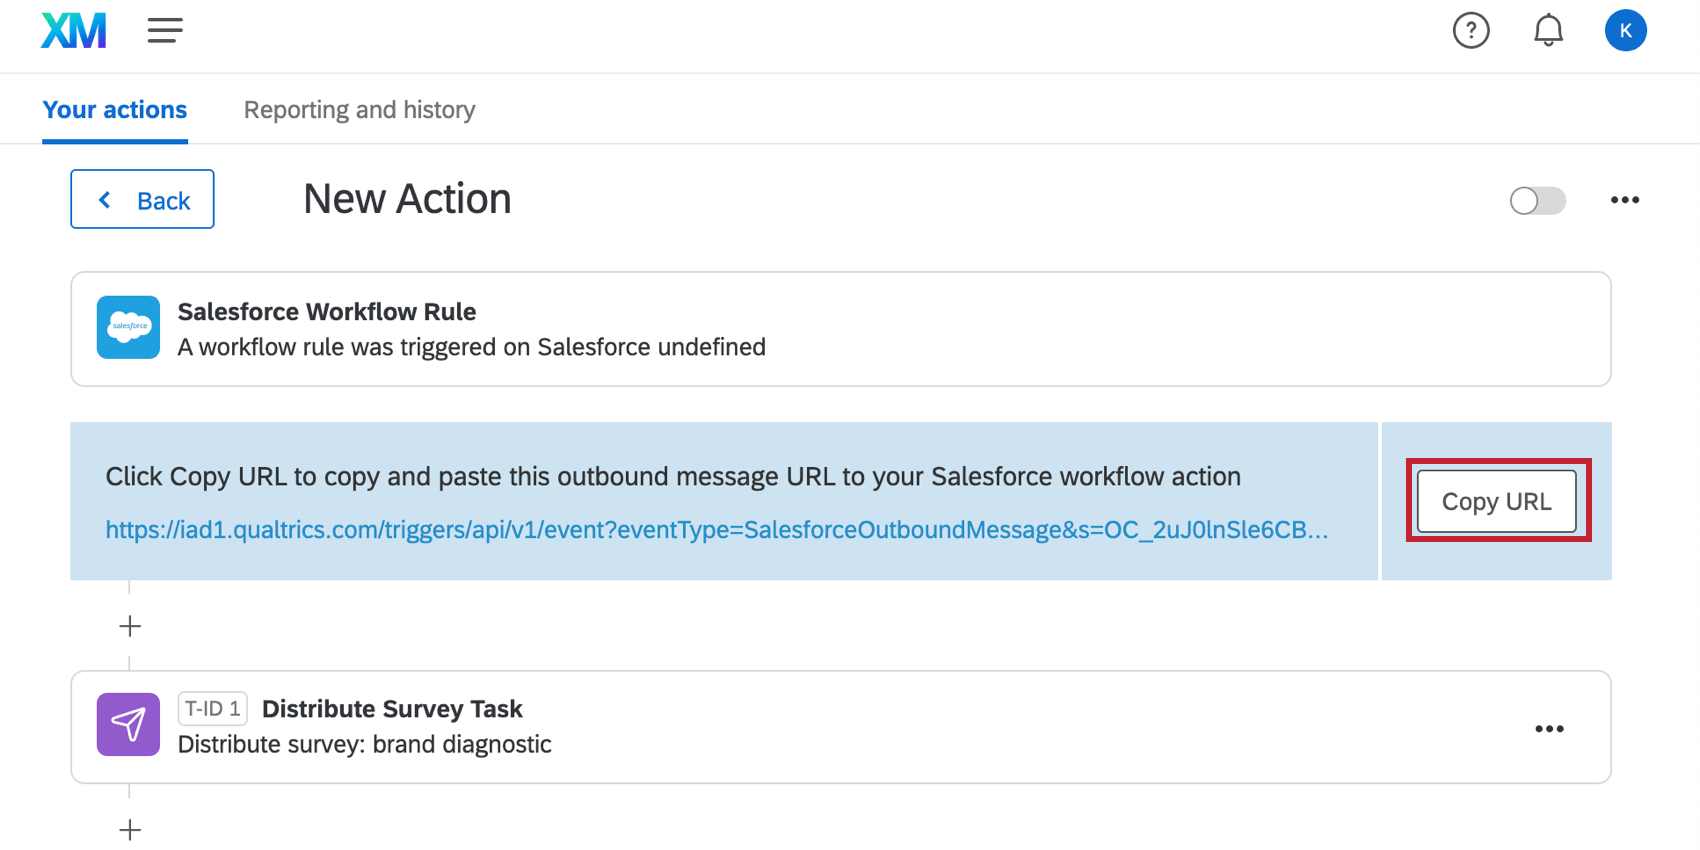 the copy URL button next to the outbound message URL